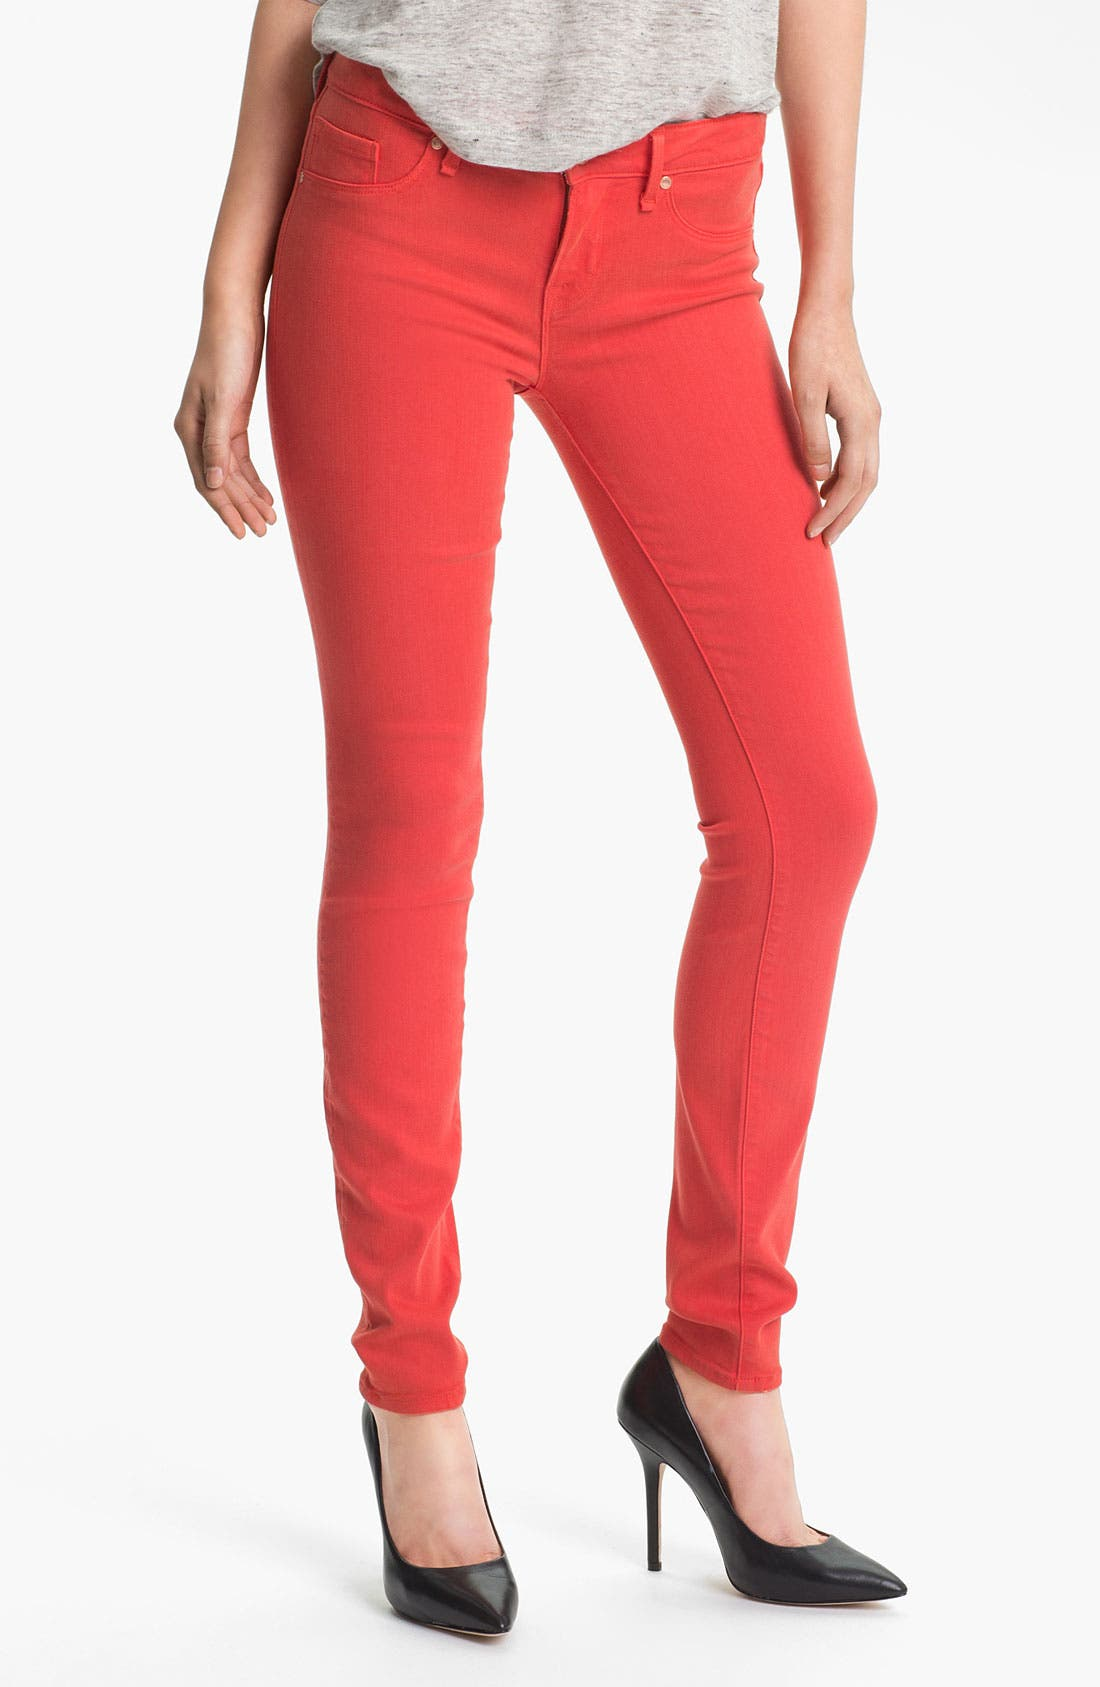 Alternate Image 1 Selected - MARC BY MARC JACOBS 'Stick' Colored Skinny Stretch Jeans (Flamingo Red)